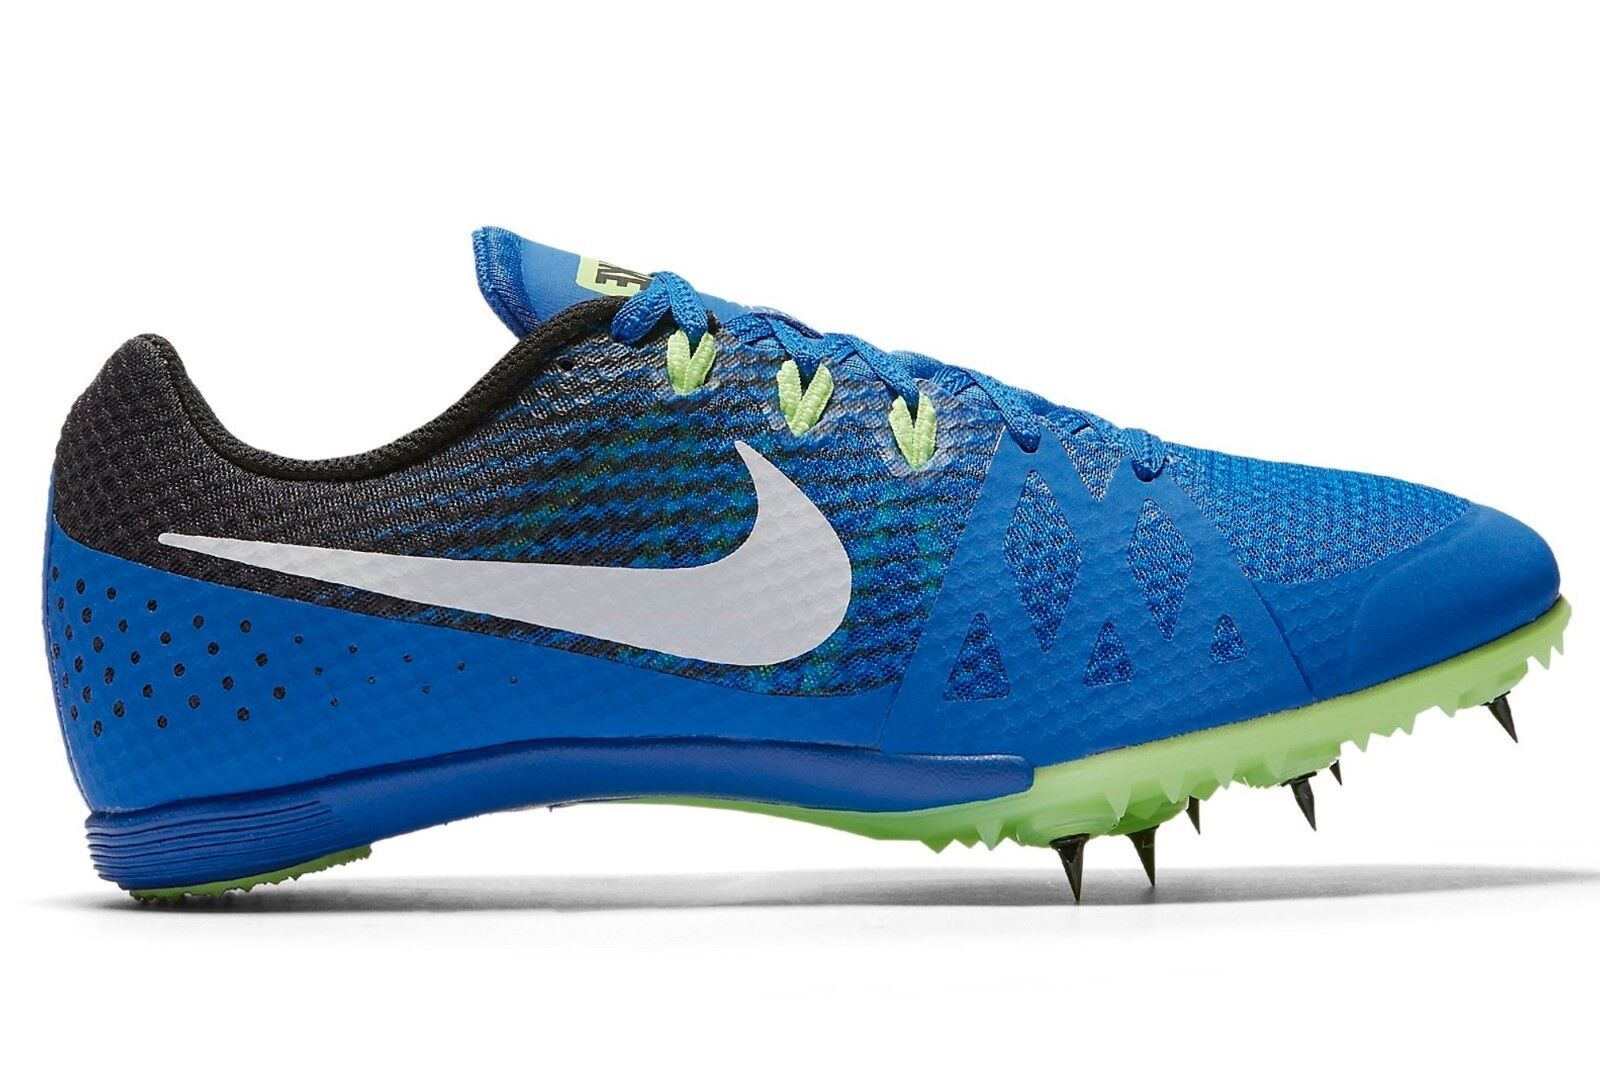 new product 4f438 879cb ... Nike Rival M Track and Field Spikes Men s Men s Men s 11 - new FREE  SHIP f08835